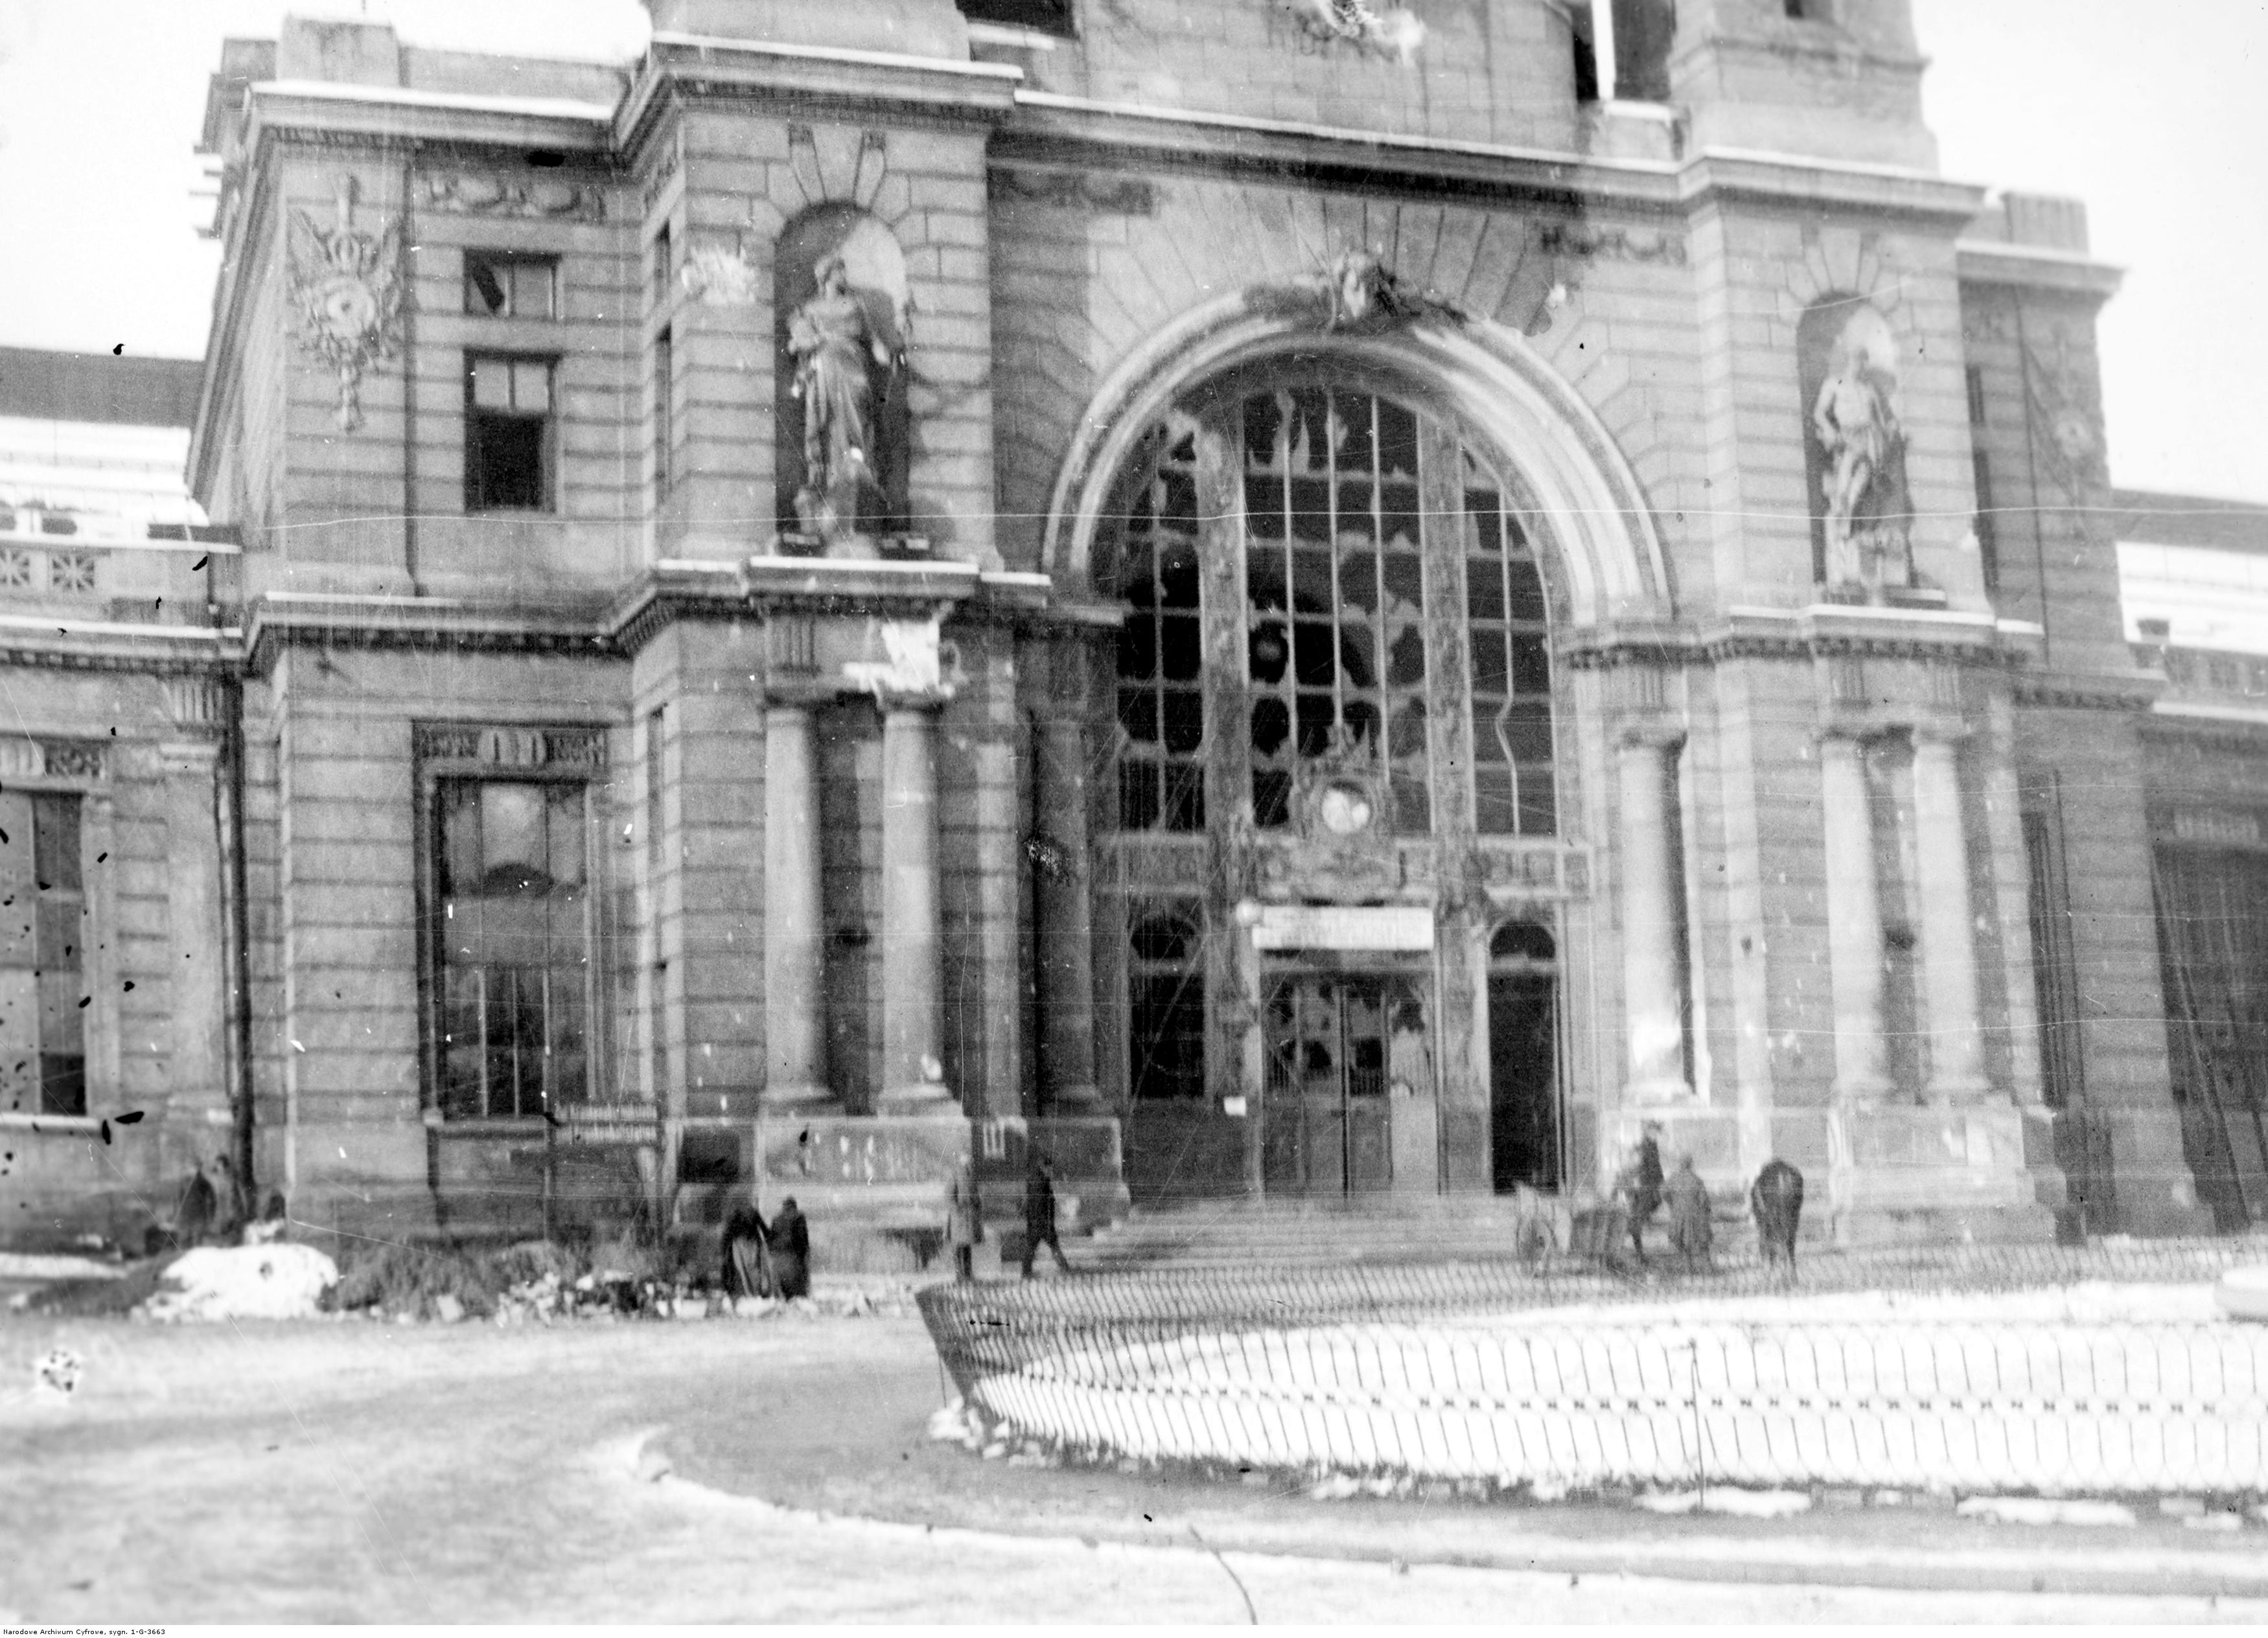 State of the railway station after the battles on November 3-4. Source: NArodowe Archiwum Cyfrowe